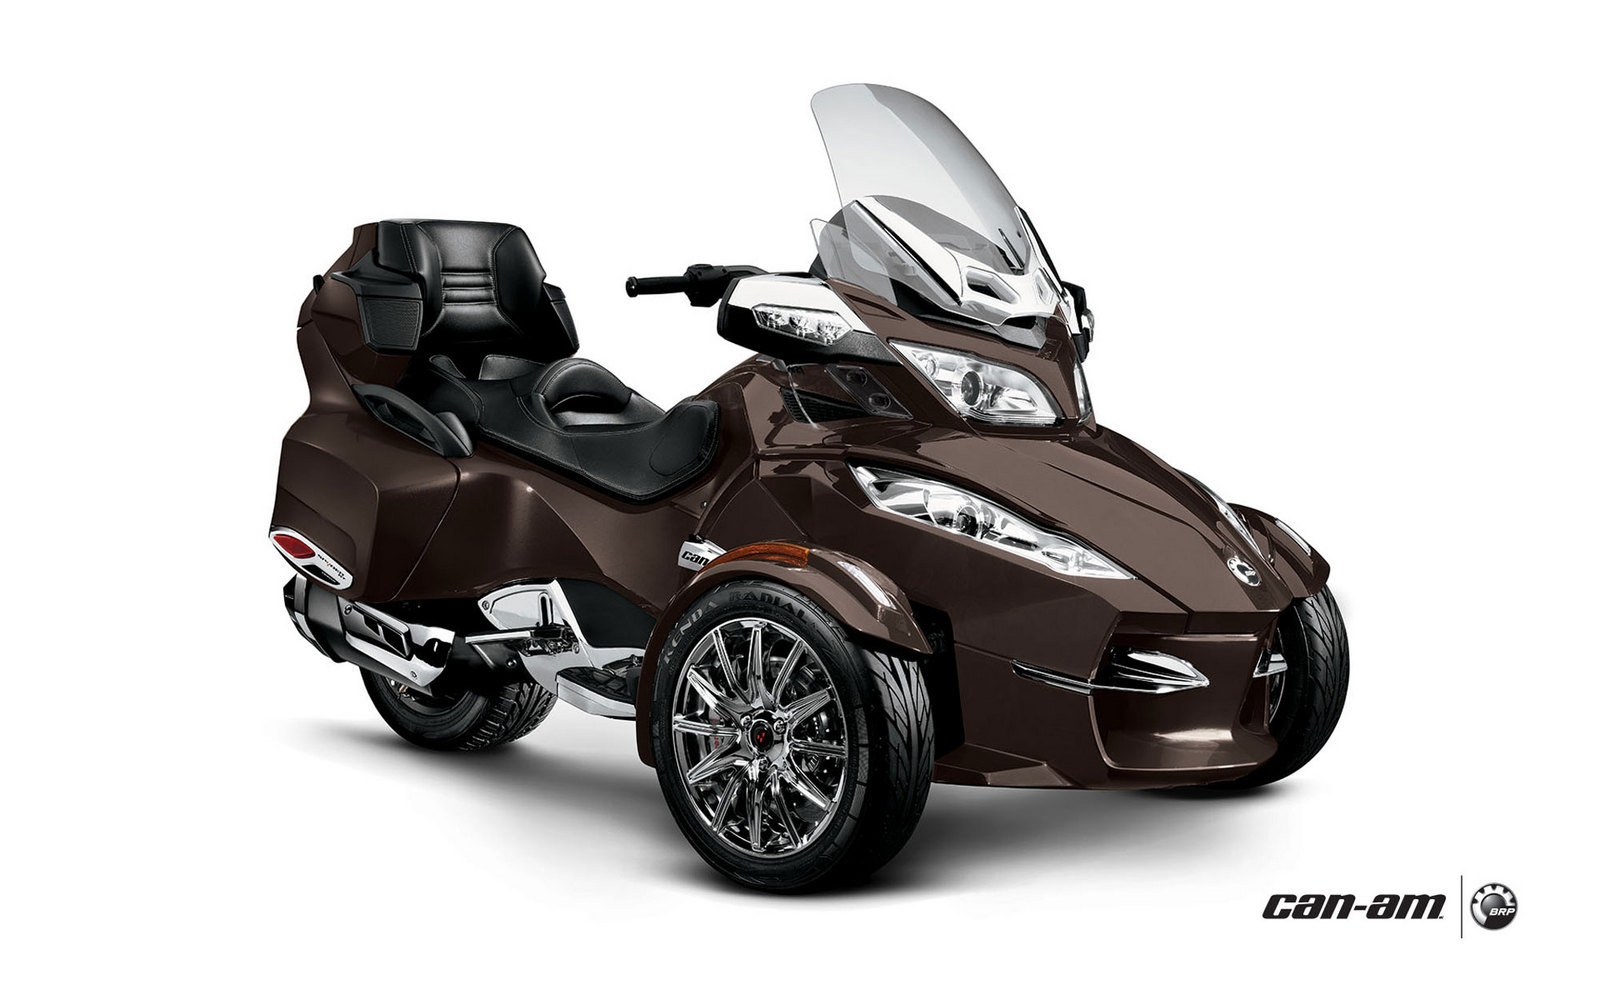 2013 can am spyder rt limited picture 509831 motorcycle review top speed. Black Bedroom Furniture Sets. Home Design Ideas